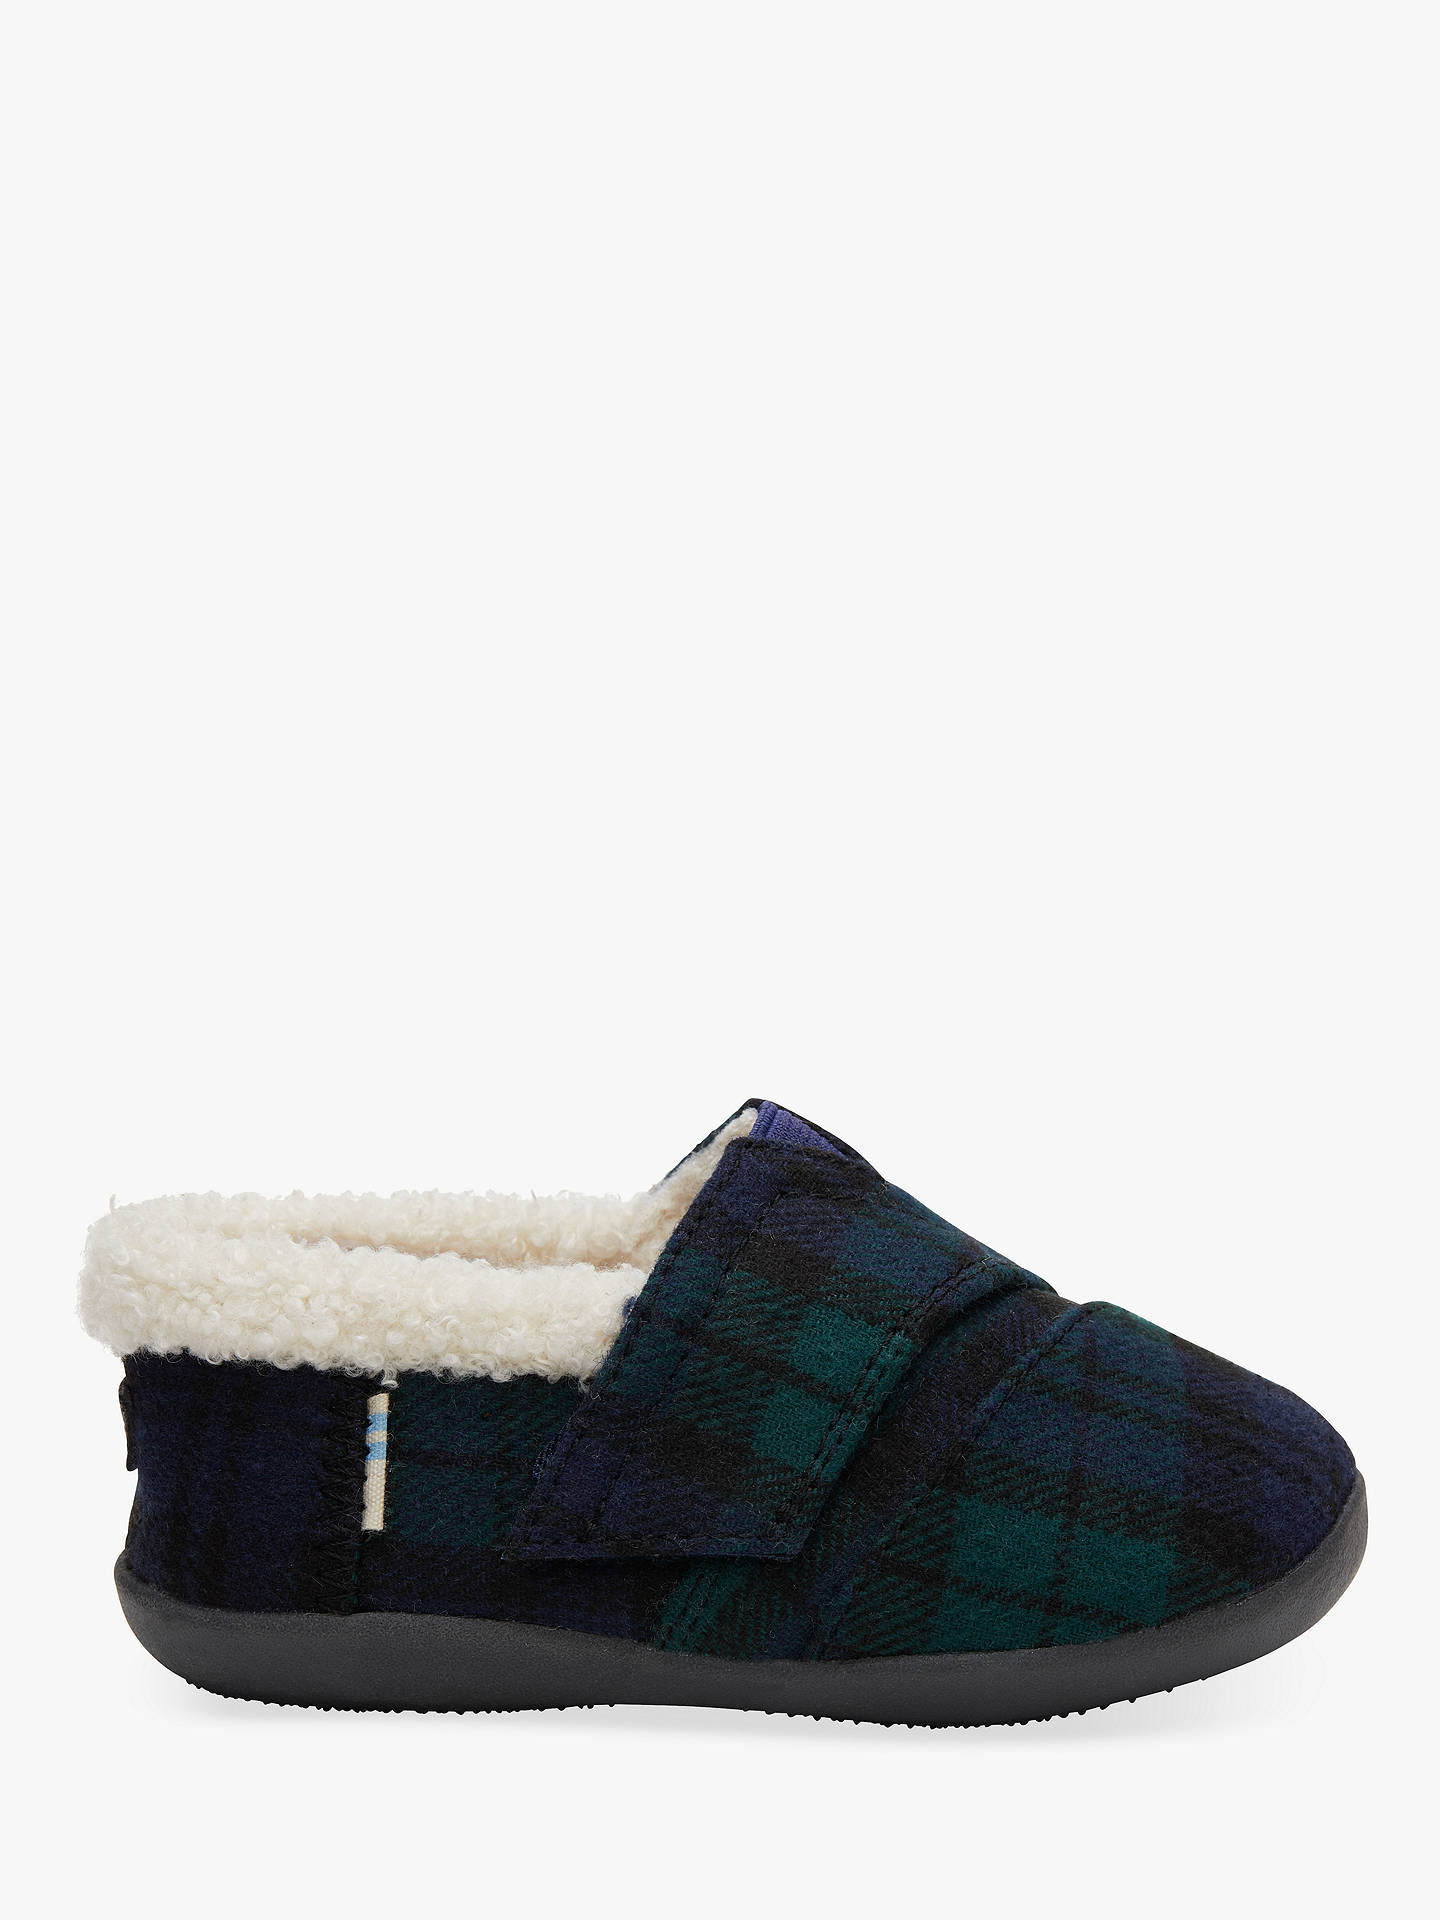 7908df8b3fd5a TOMS Children's Spruce Plaid Check Slippers, Navy at John Lewis ...